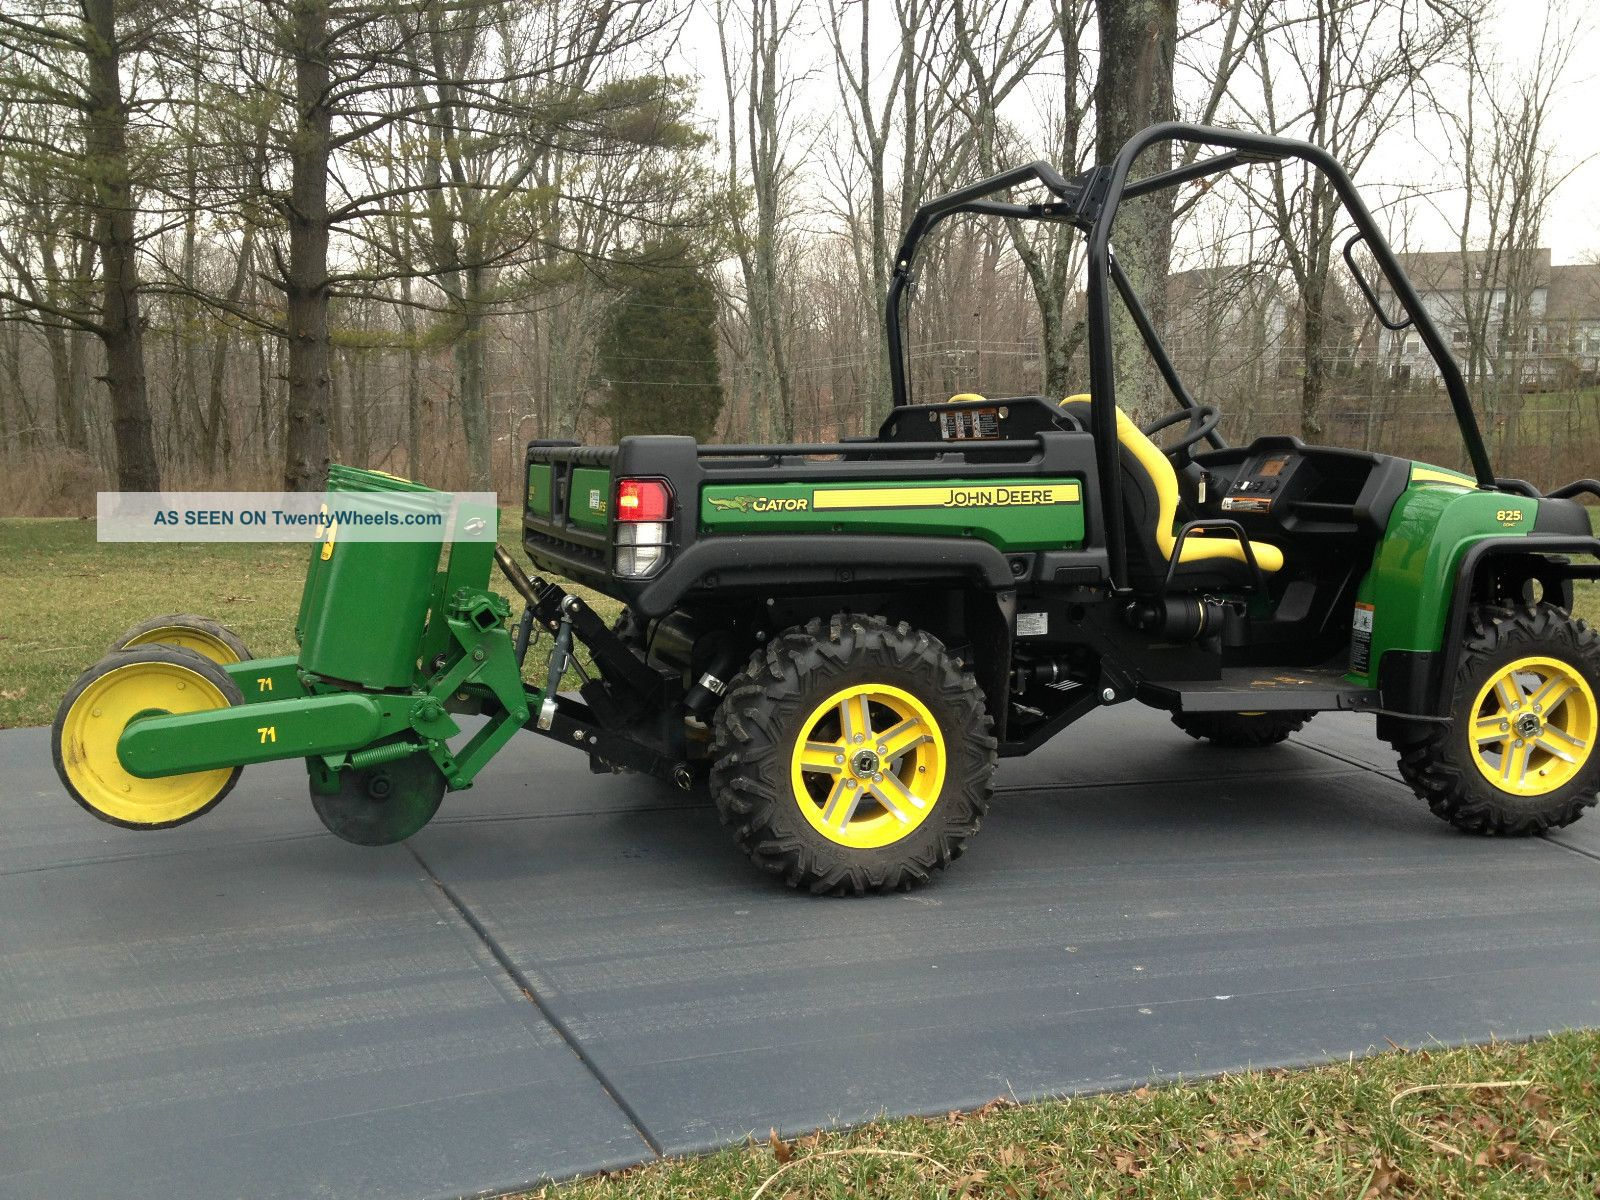 2012 John Deere Gator 825i With Hydraulic 3 - Point Hitch & 2 - Row Flex 71 Planter Utility Vehicles photo